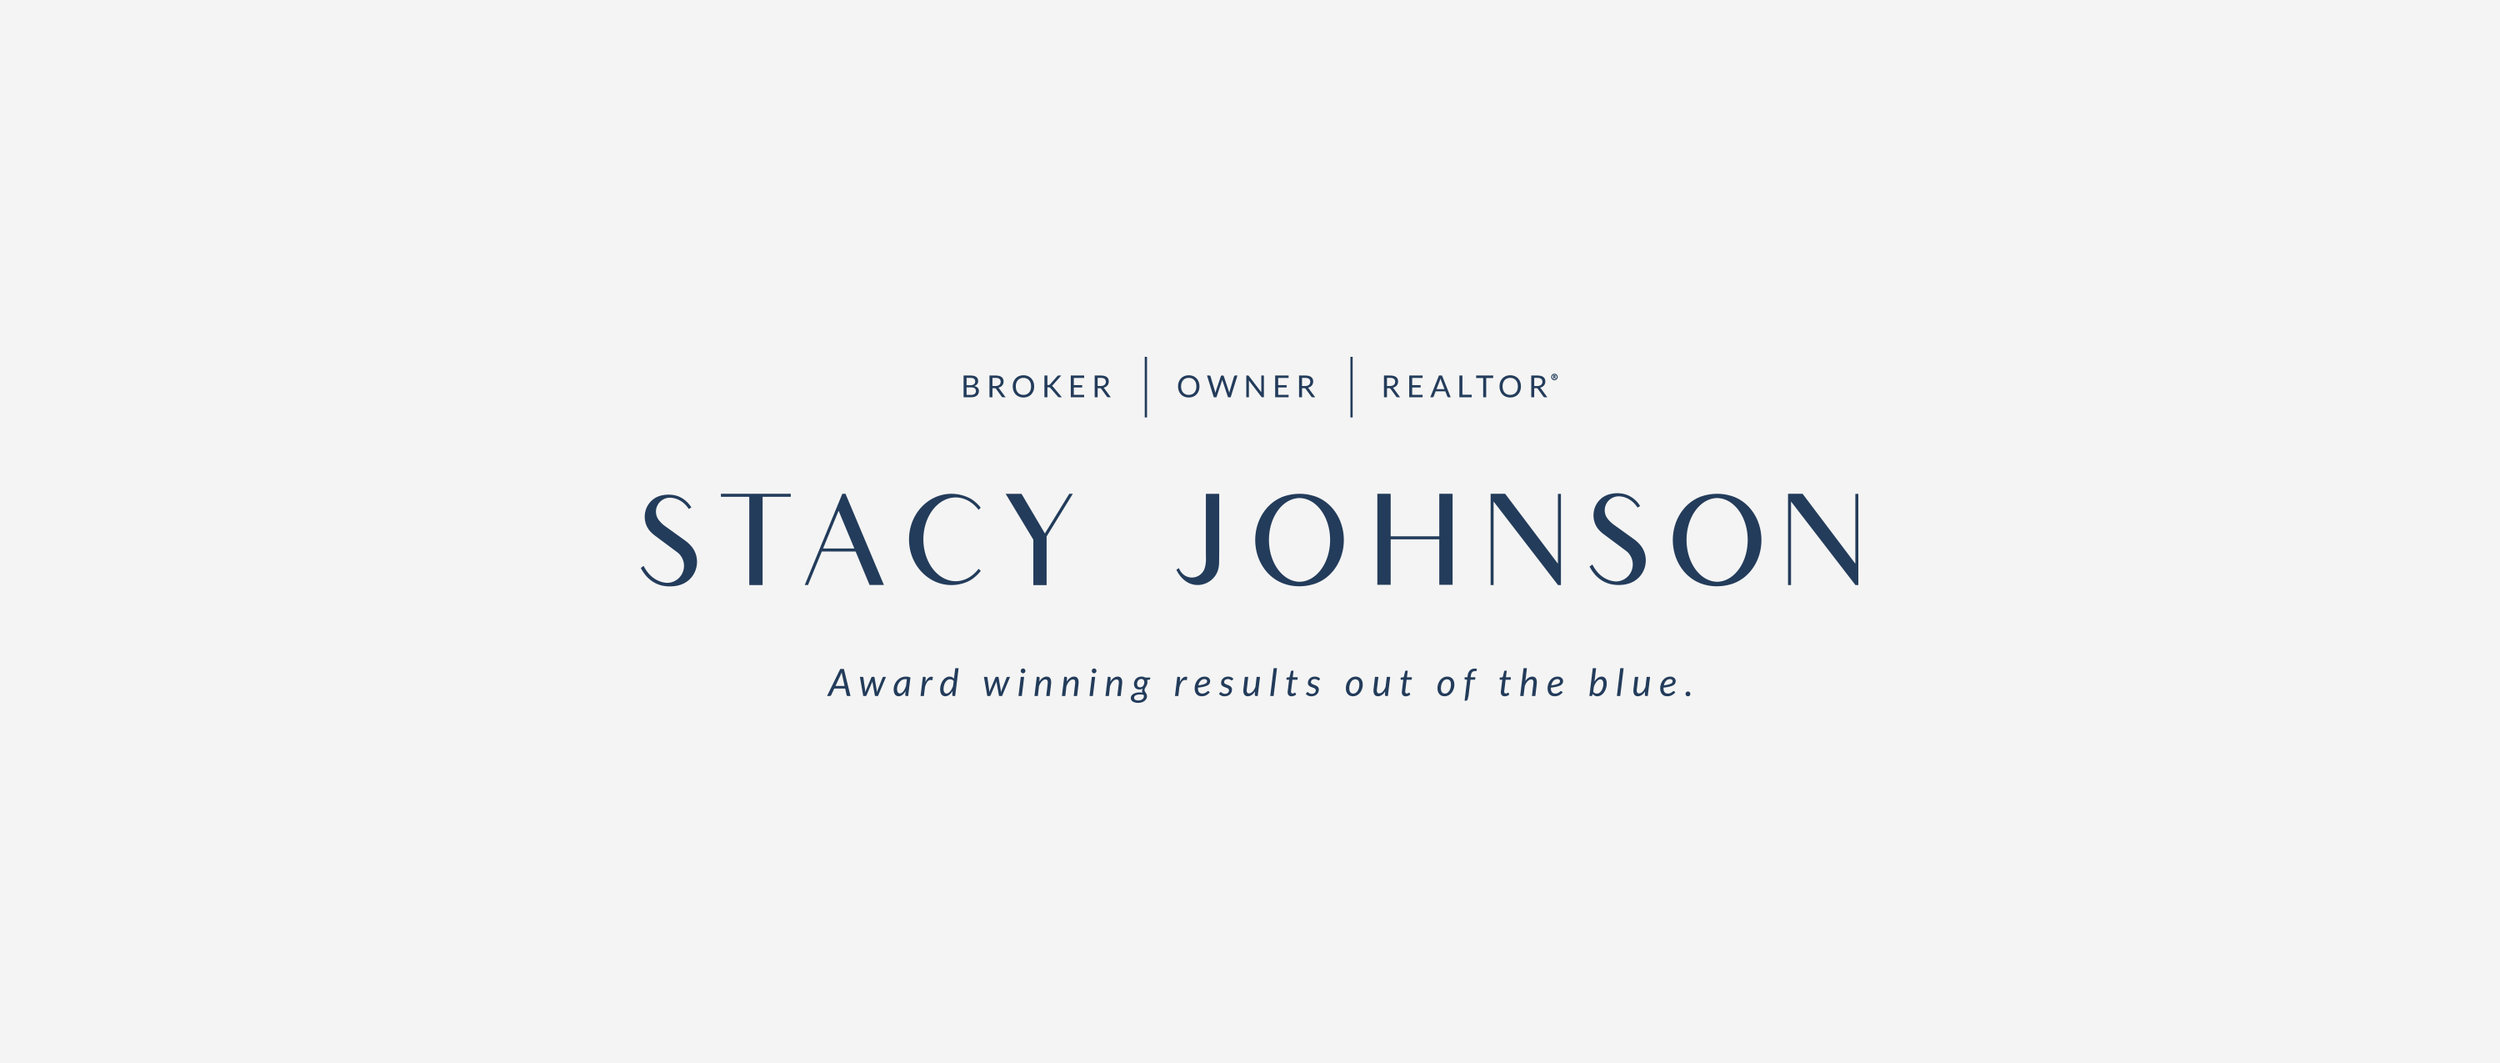 stacy-johnson-branding-design-clover-and-crow